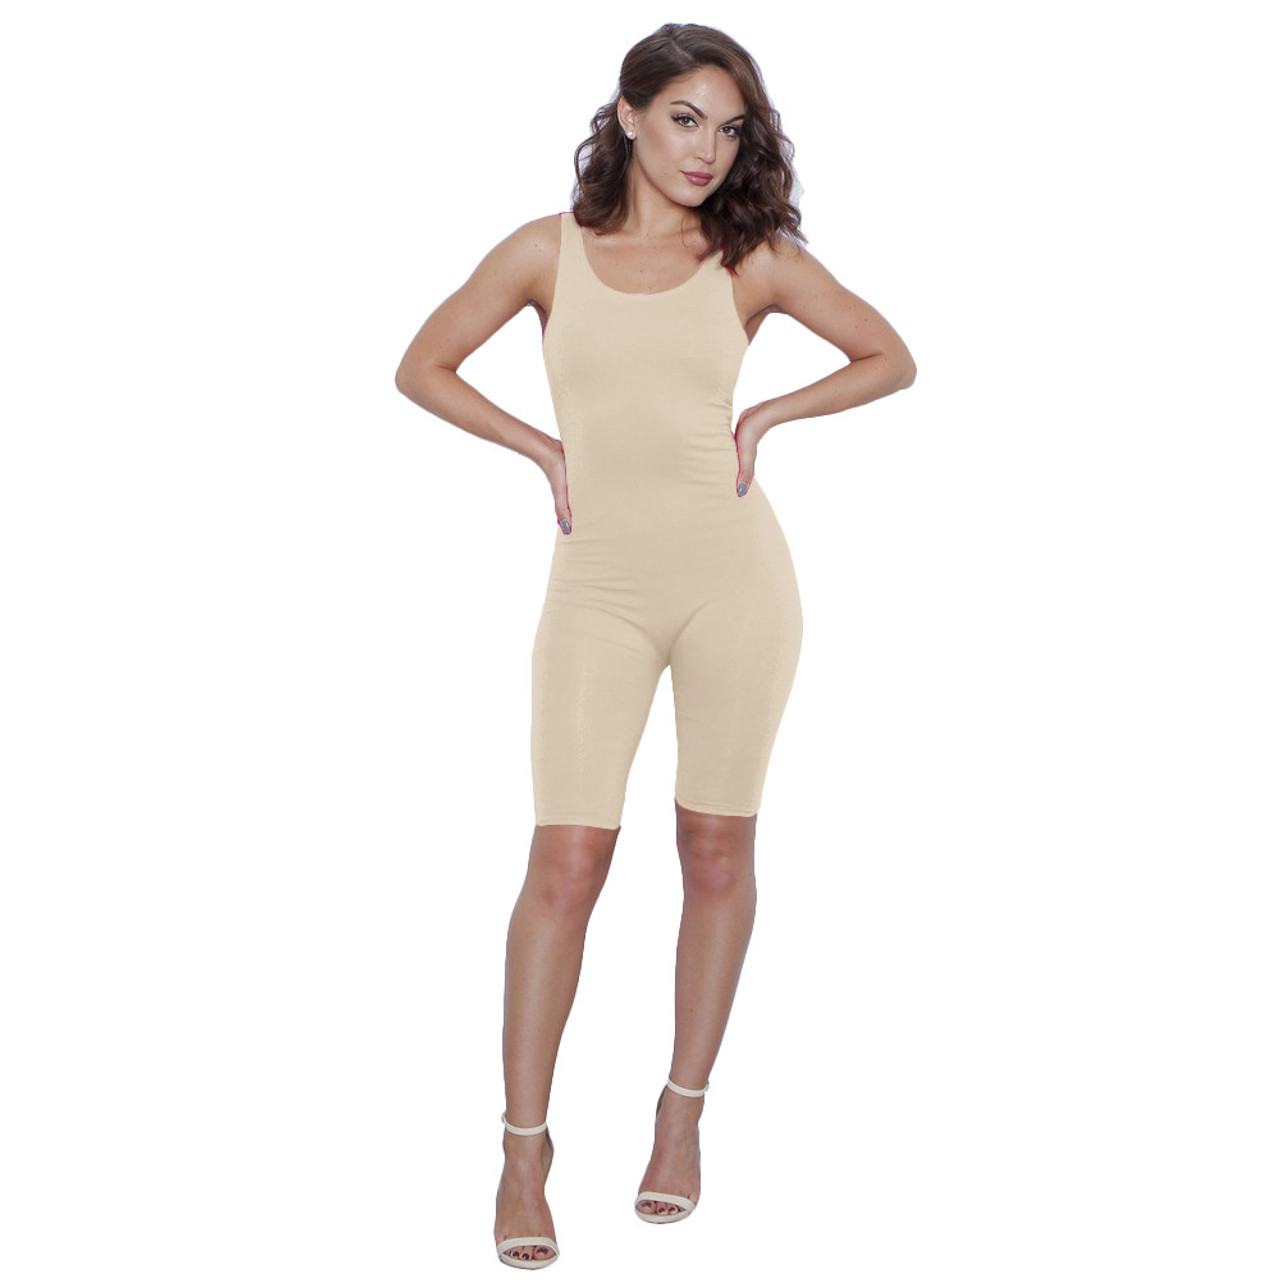 87ee6b12c010 Stretch-Knit Cami Romper Sexy Sleeveless Bodysuit Women Summer Jumpsuit  Shorts Romper Slim Bodycon Skinny Playsuit Ladies Strap Cami Bodysuits